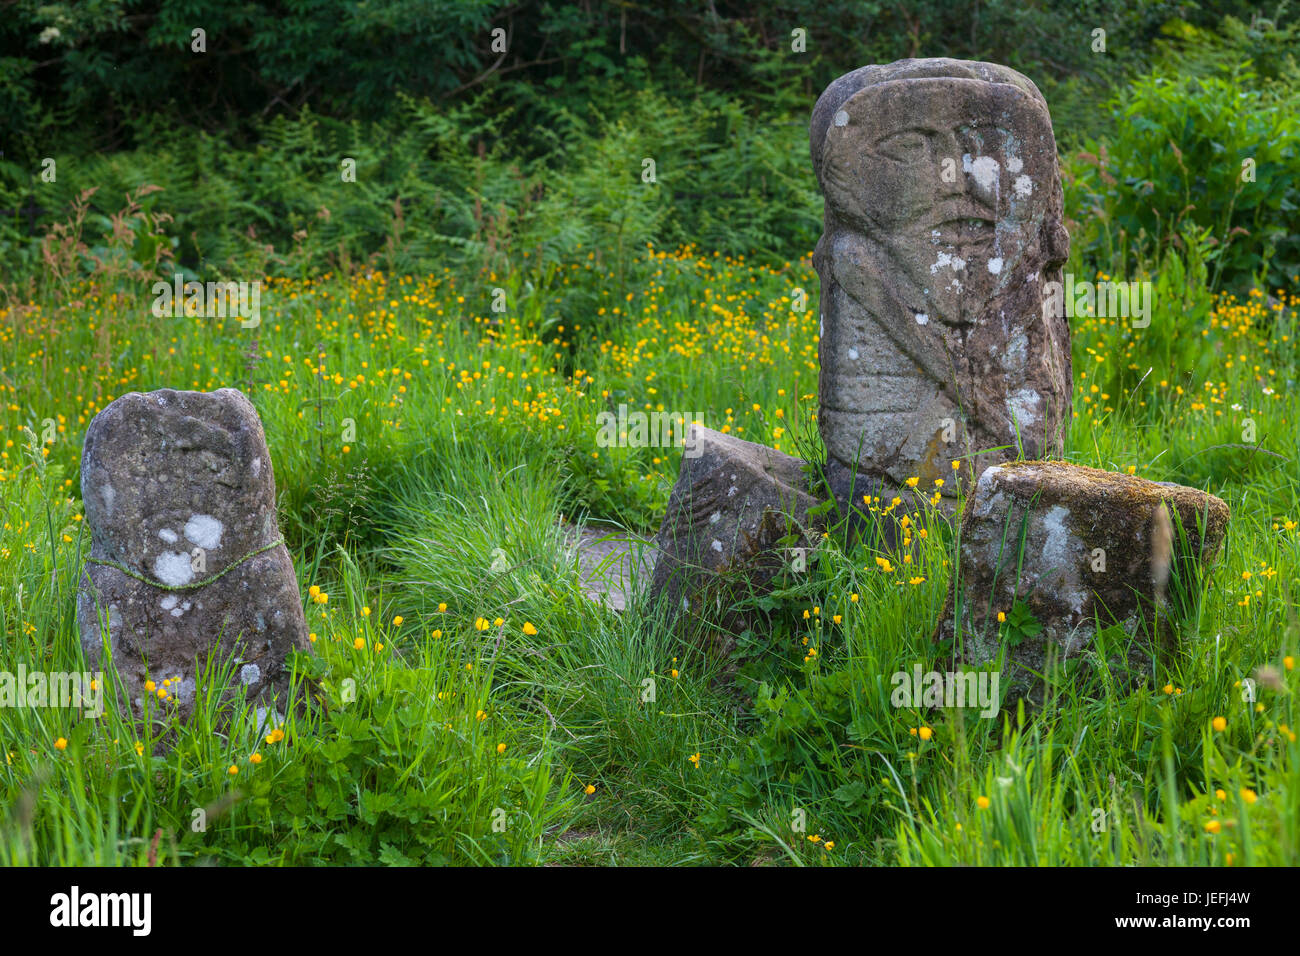 The rear of the Boa Island bilateral figure, regarded as one of the most enigmatic and remarkable stone figures - Stock Image